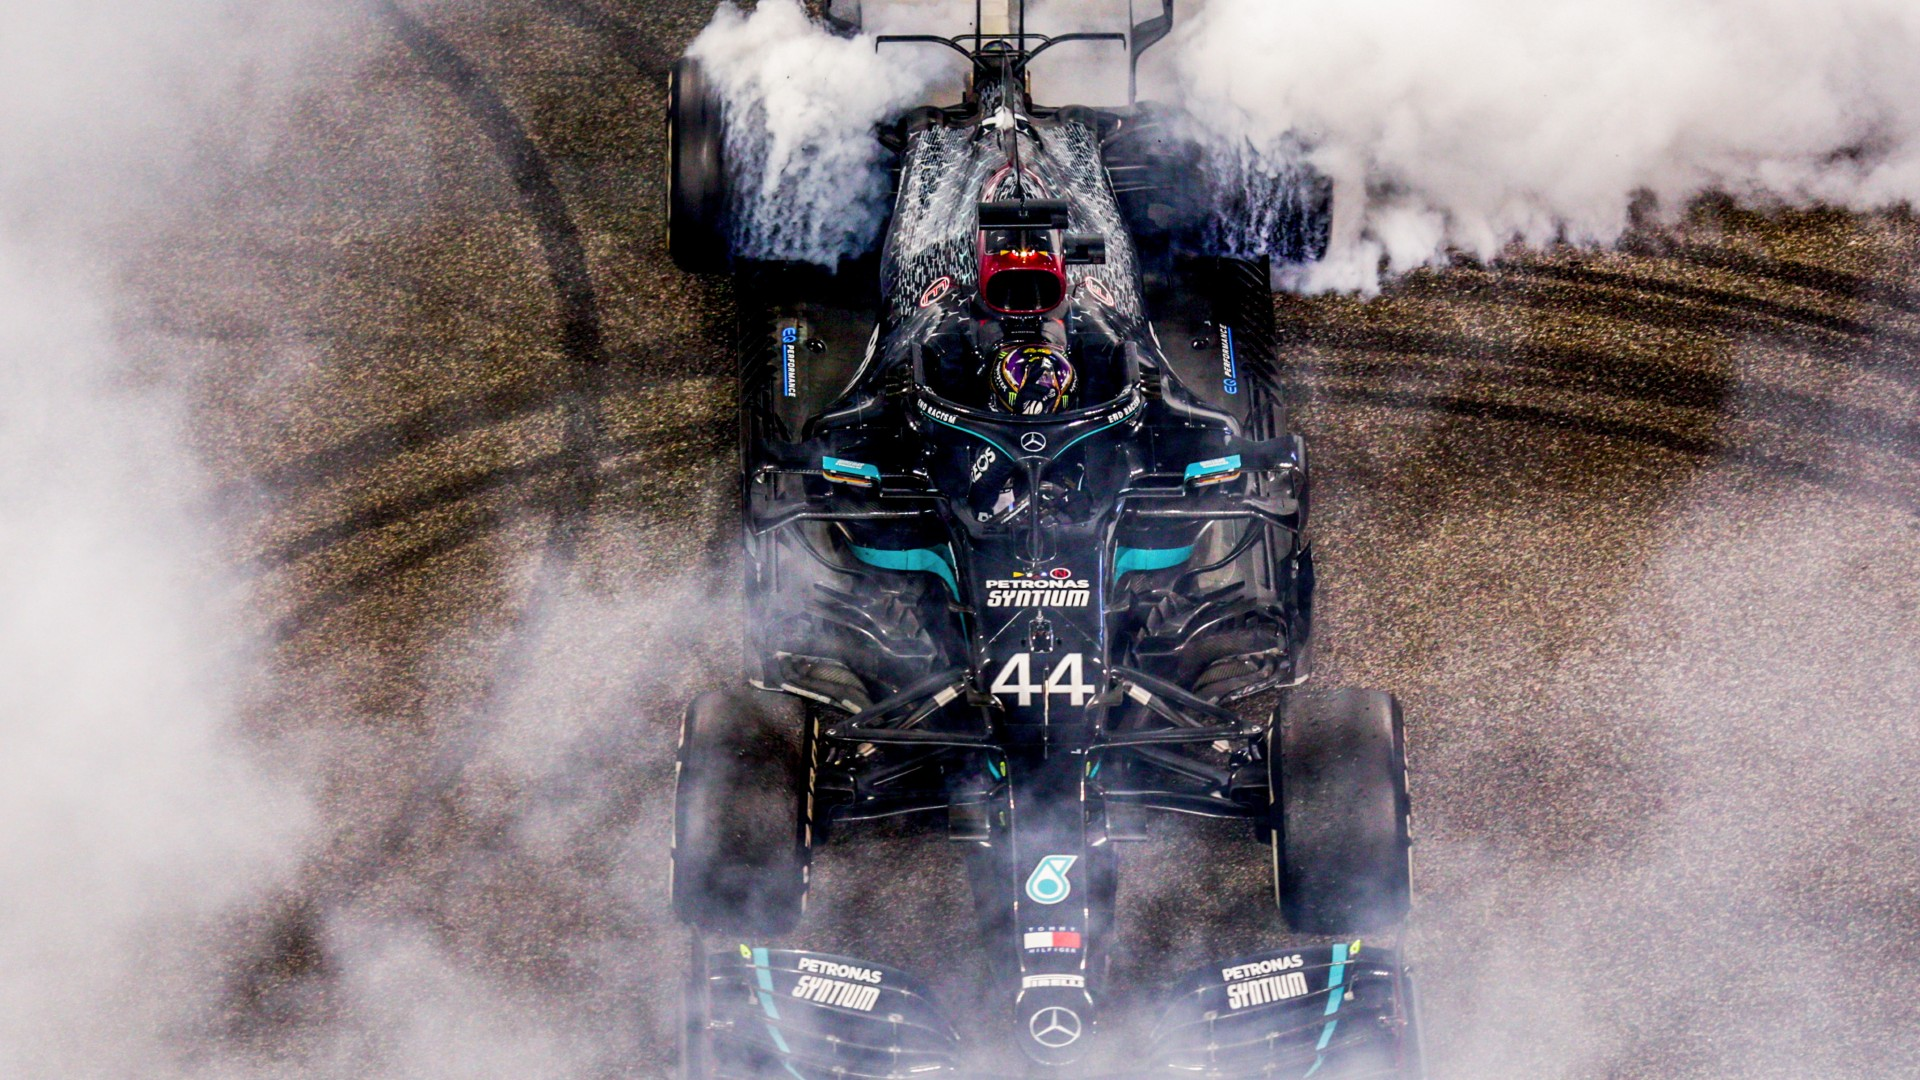 F1 schedule 2021: Date, start time, TV channel for every Formula 1 race